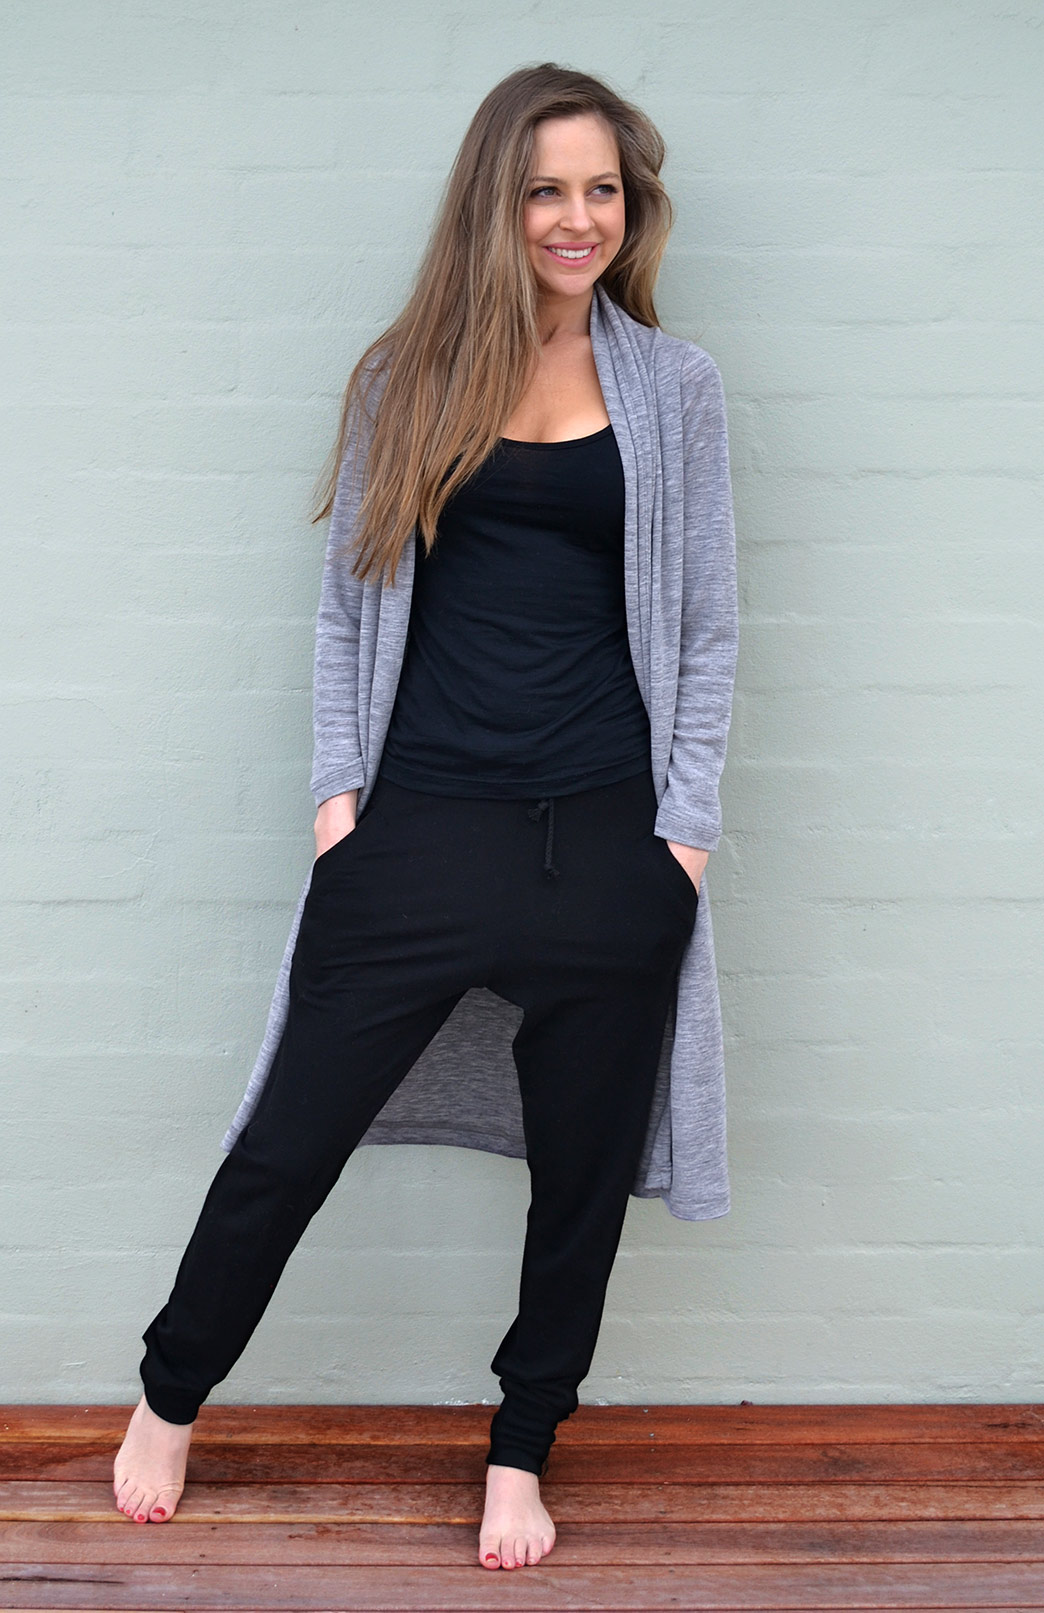 Lounge Pants - Women's Black Wool Jogger Pants with pockets and ties - Smitten Merino Tasmania Australia